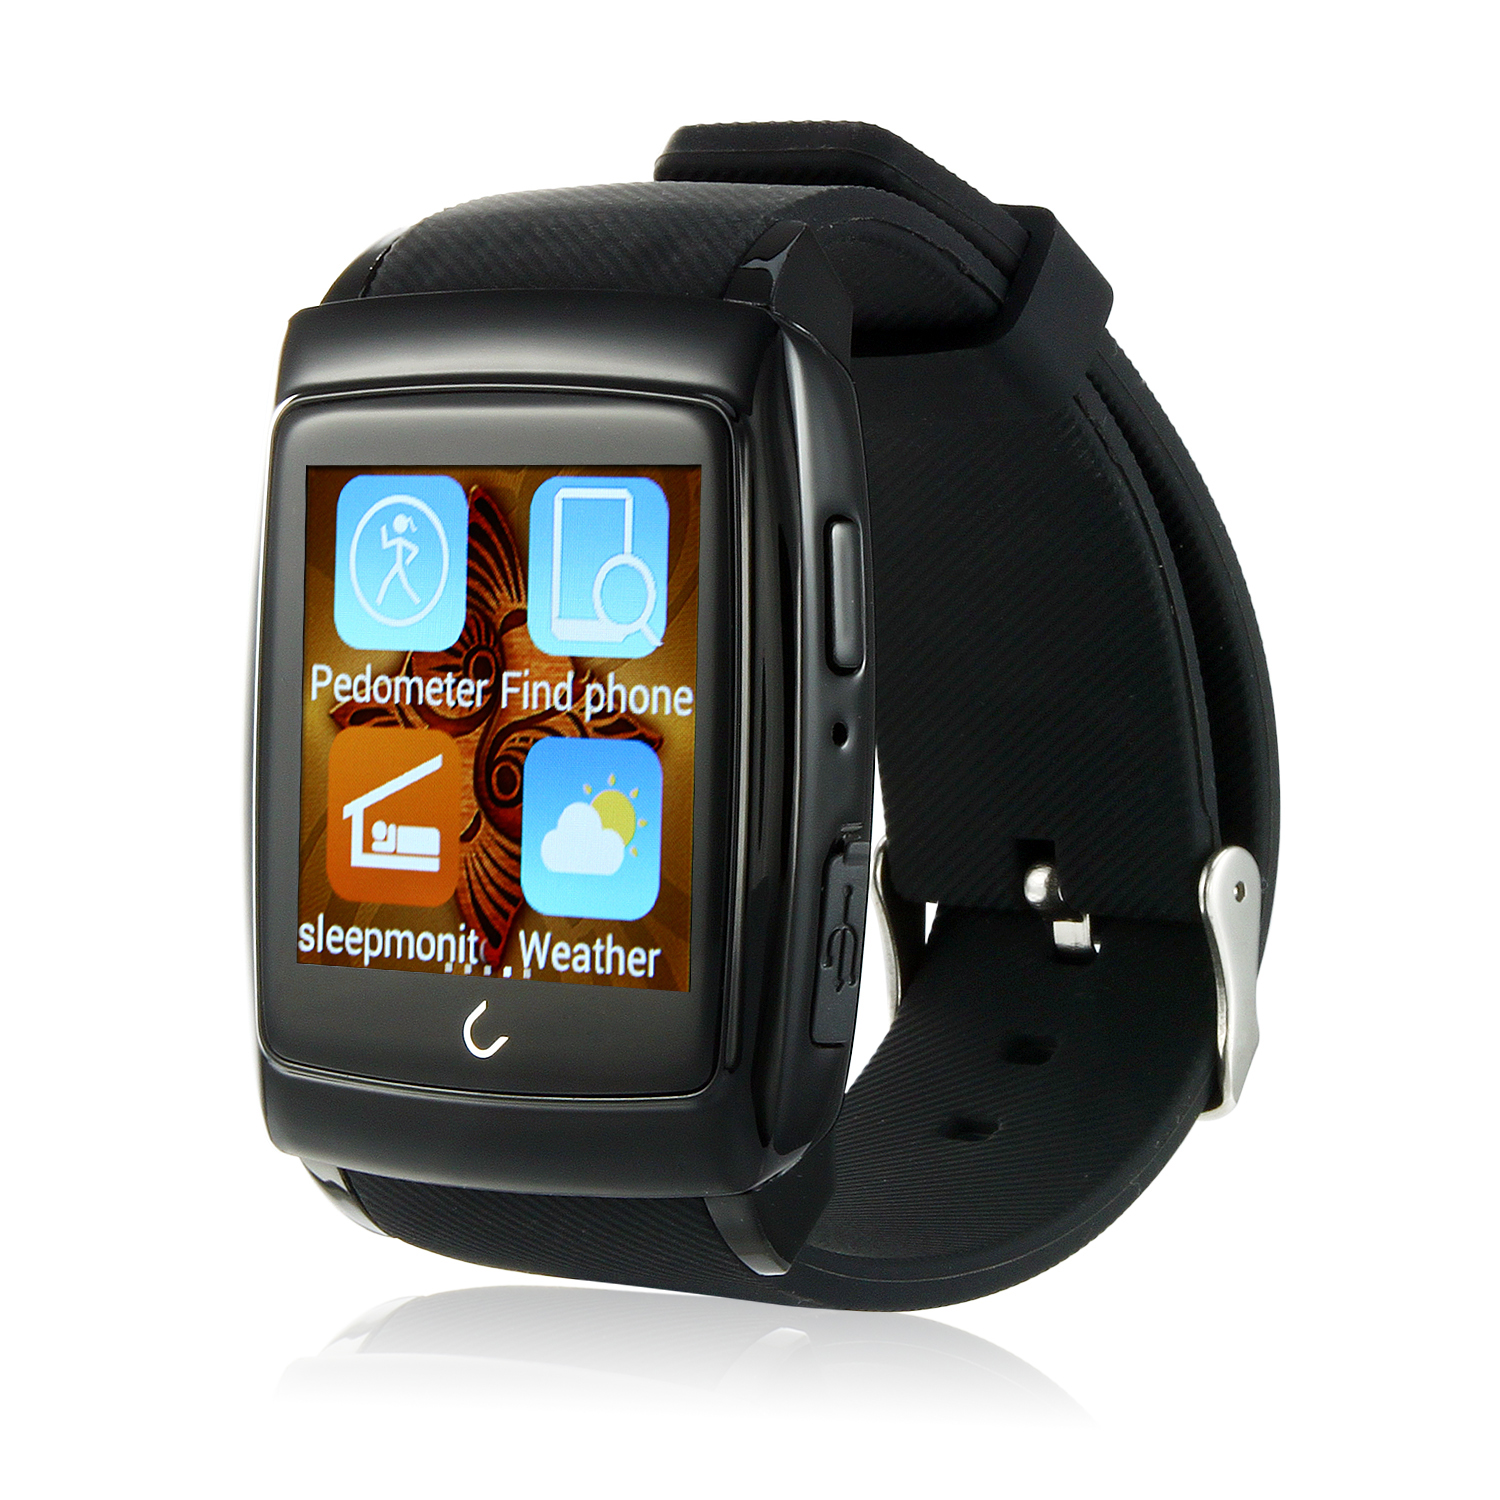 Uwatch U18 MTK6571 1.54 Inch IPS Screen Android 4.4 Bluetooth 4.0 Nano Waterproof Black